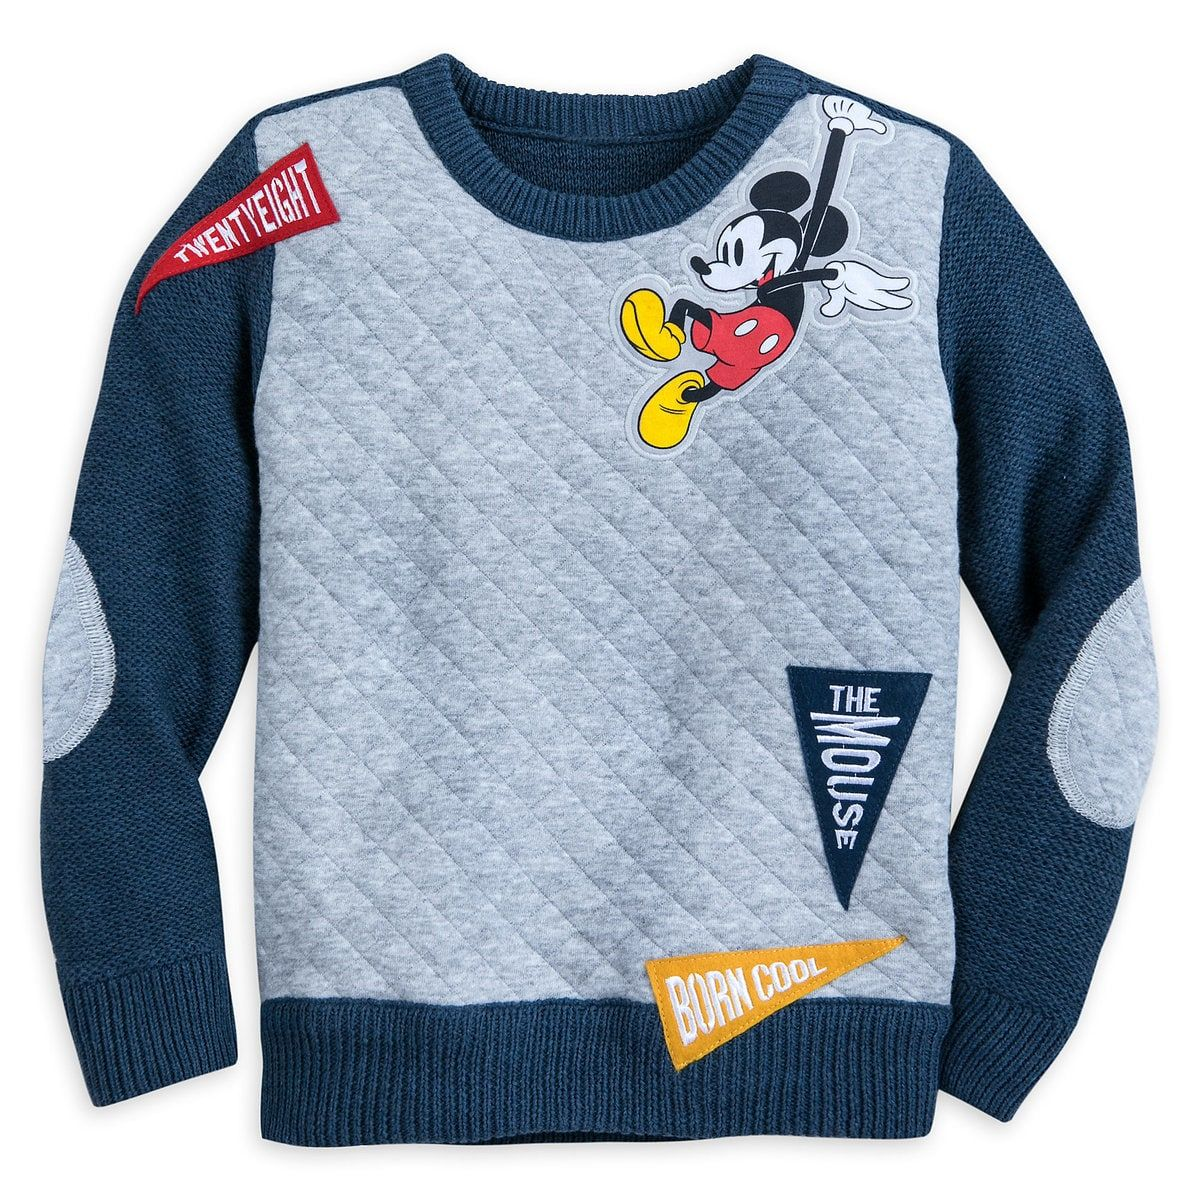 Mickey Mouse Sweater For Kids Toddler Girl Outfits Boy Outfits Toddler Boy Outfits [ 1200 x 1200 Pixel ]